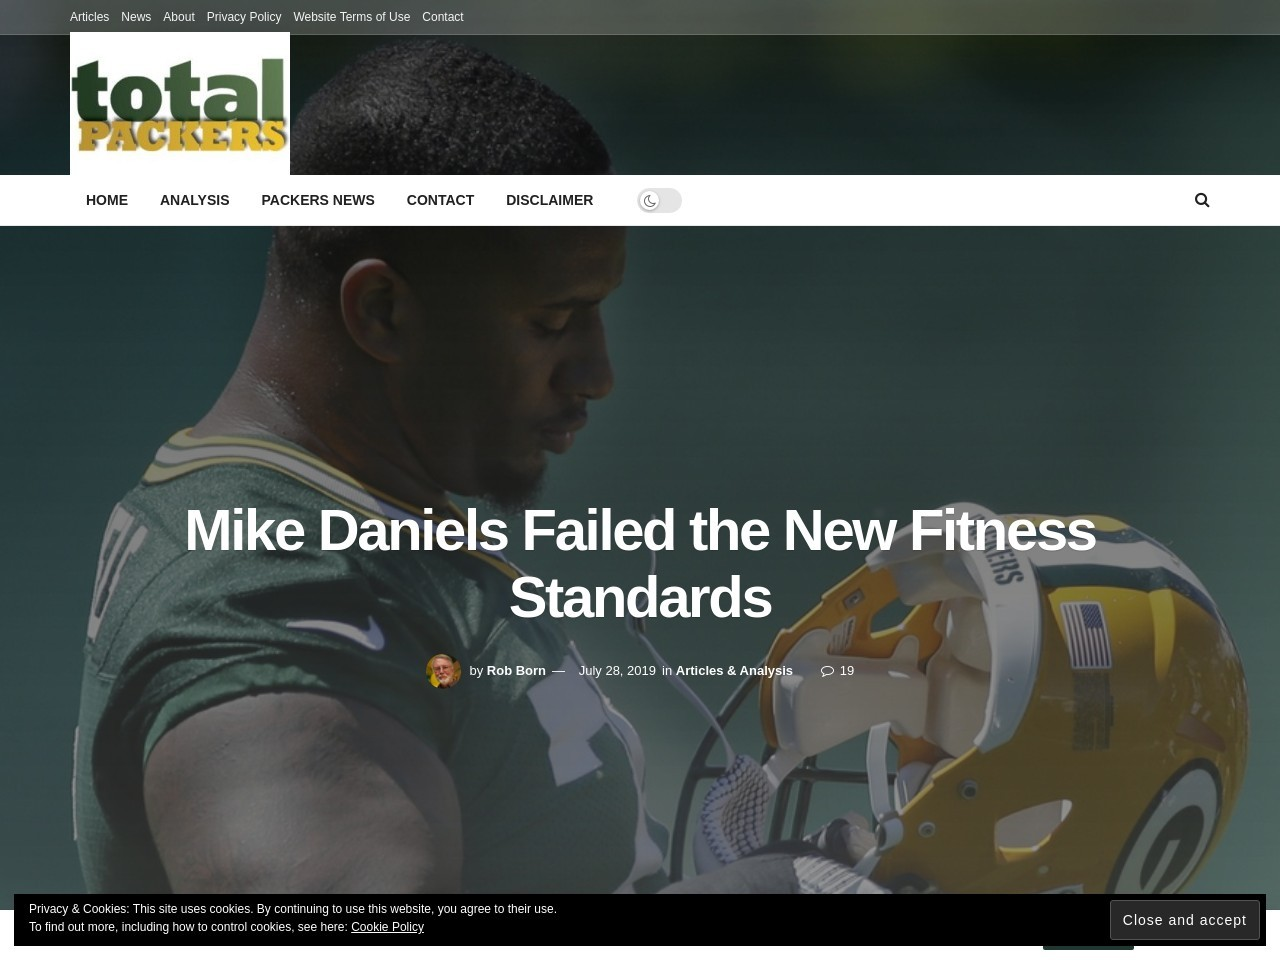 Mike Daniels Failed the New Fitness Standards